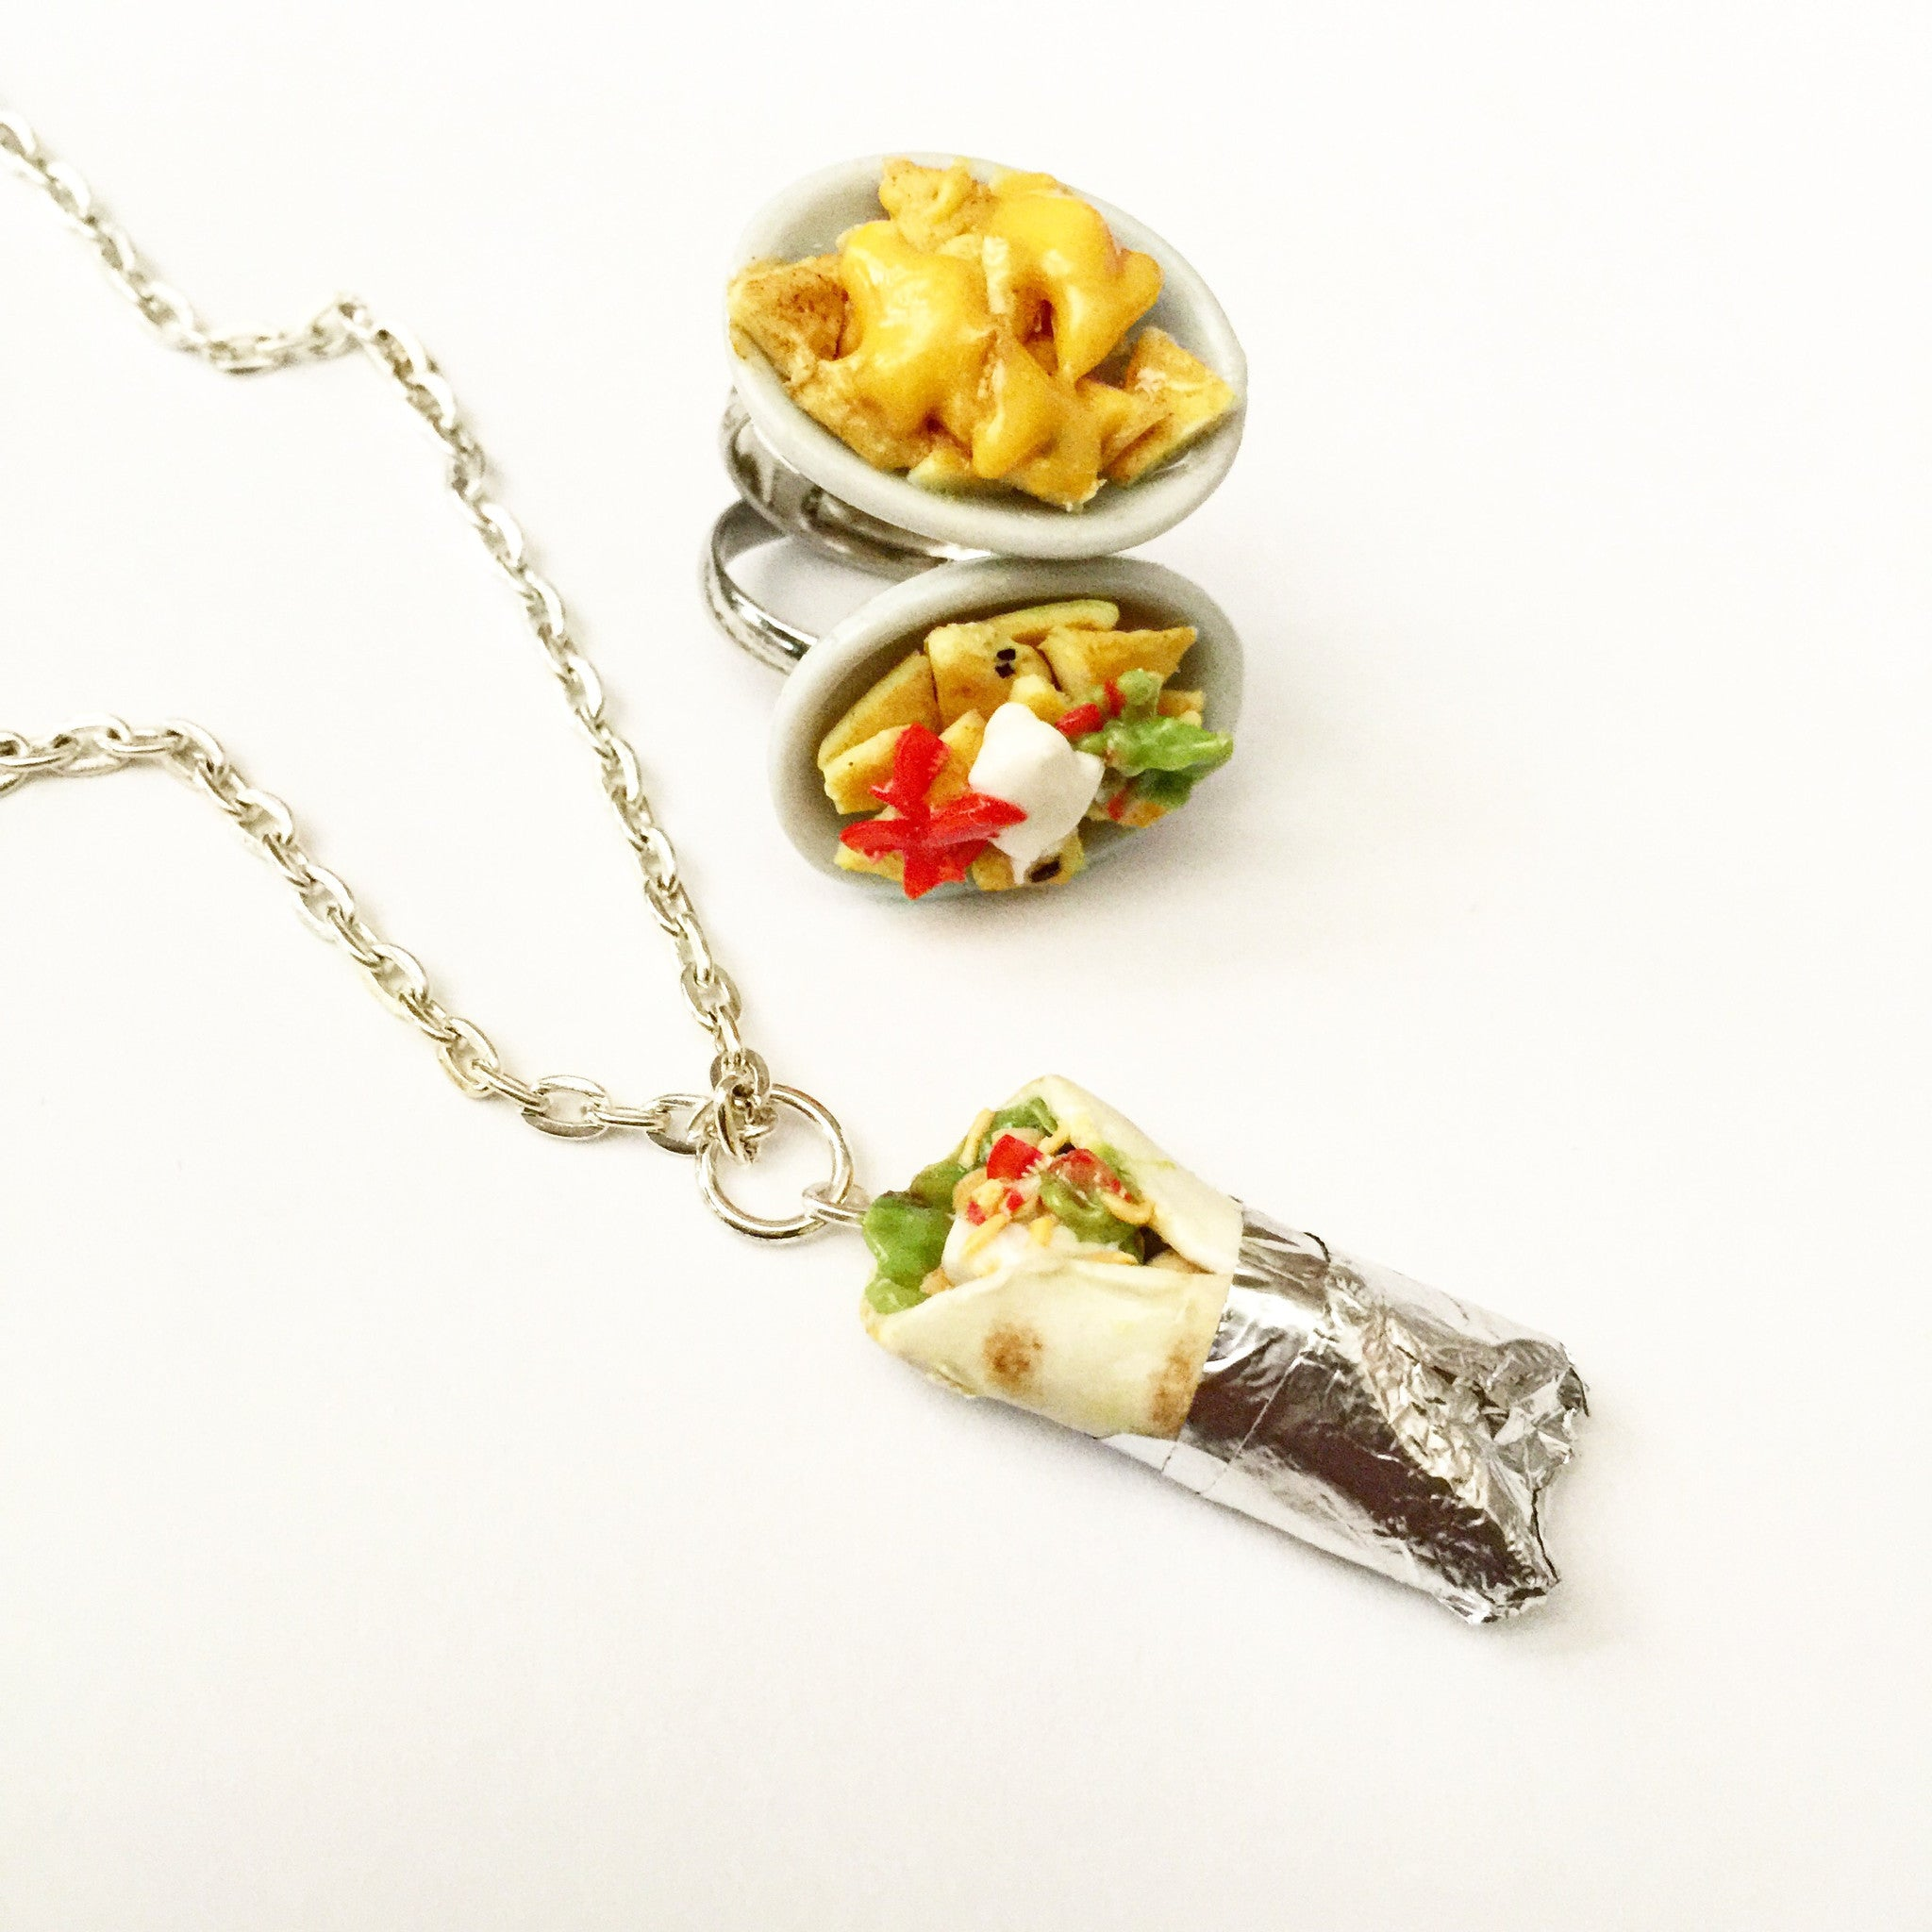 Burrito Necklace - Jillicious charms and accessories